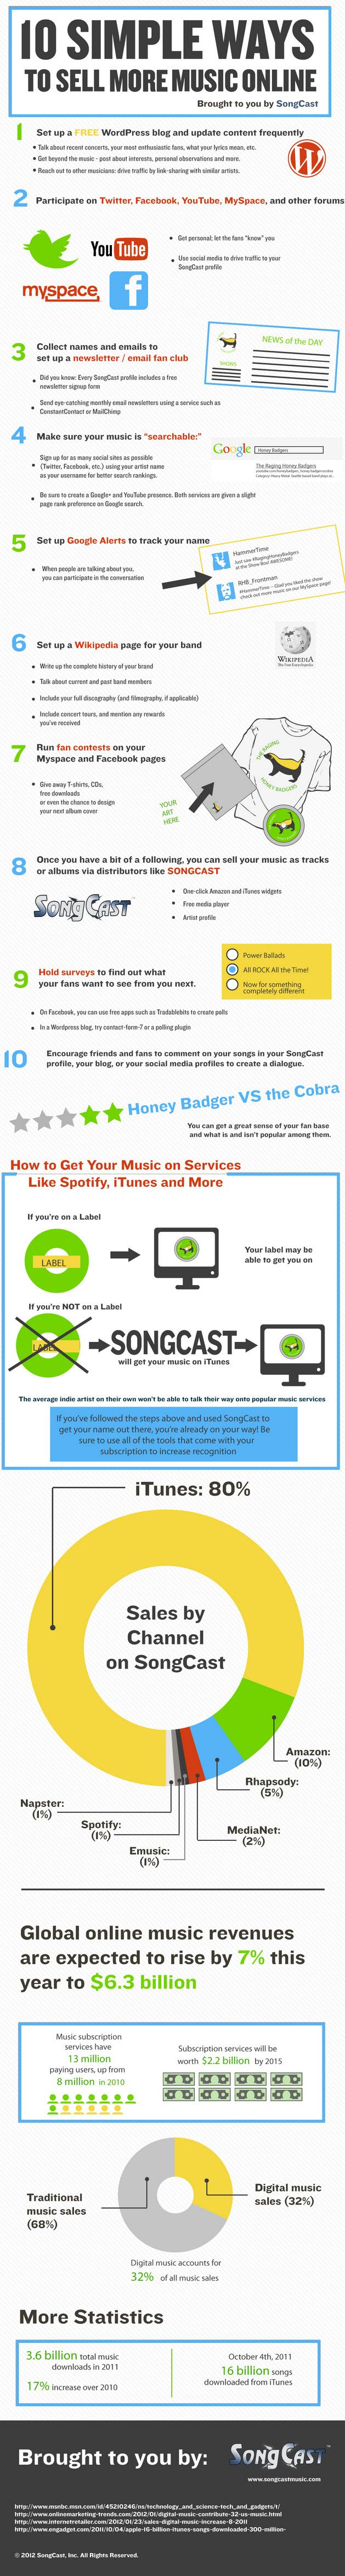 10 simple ways to sell more music online #infographic